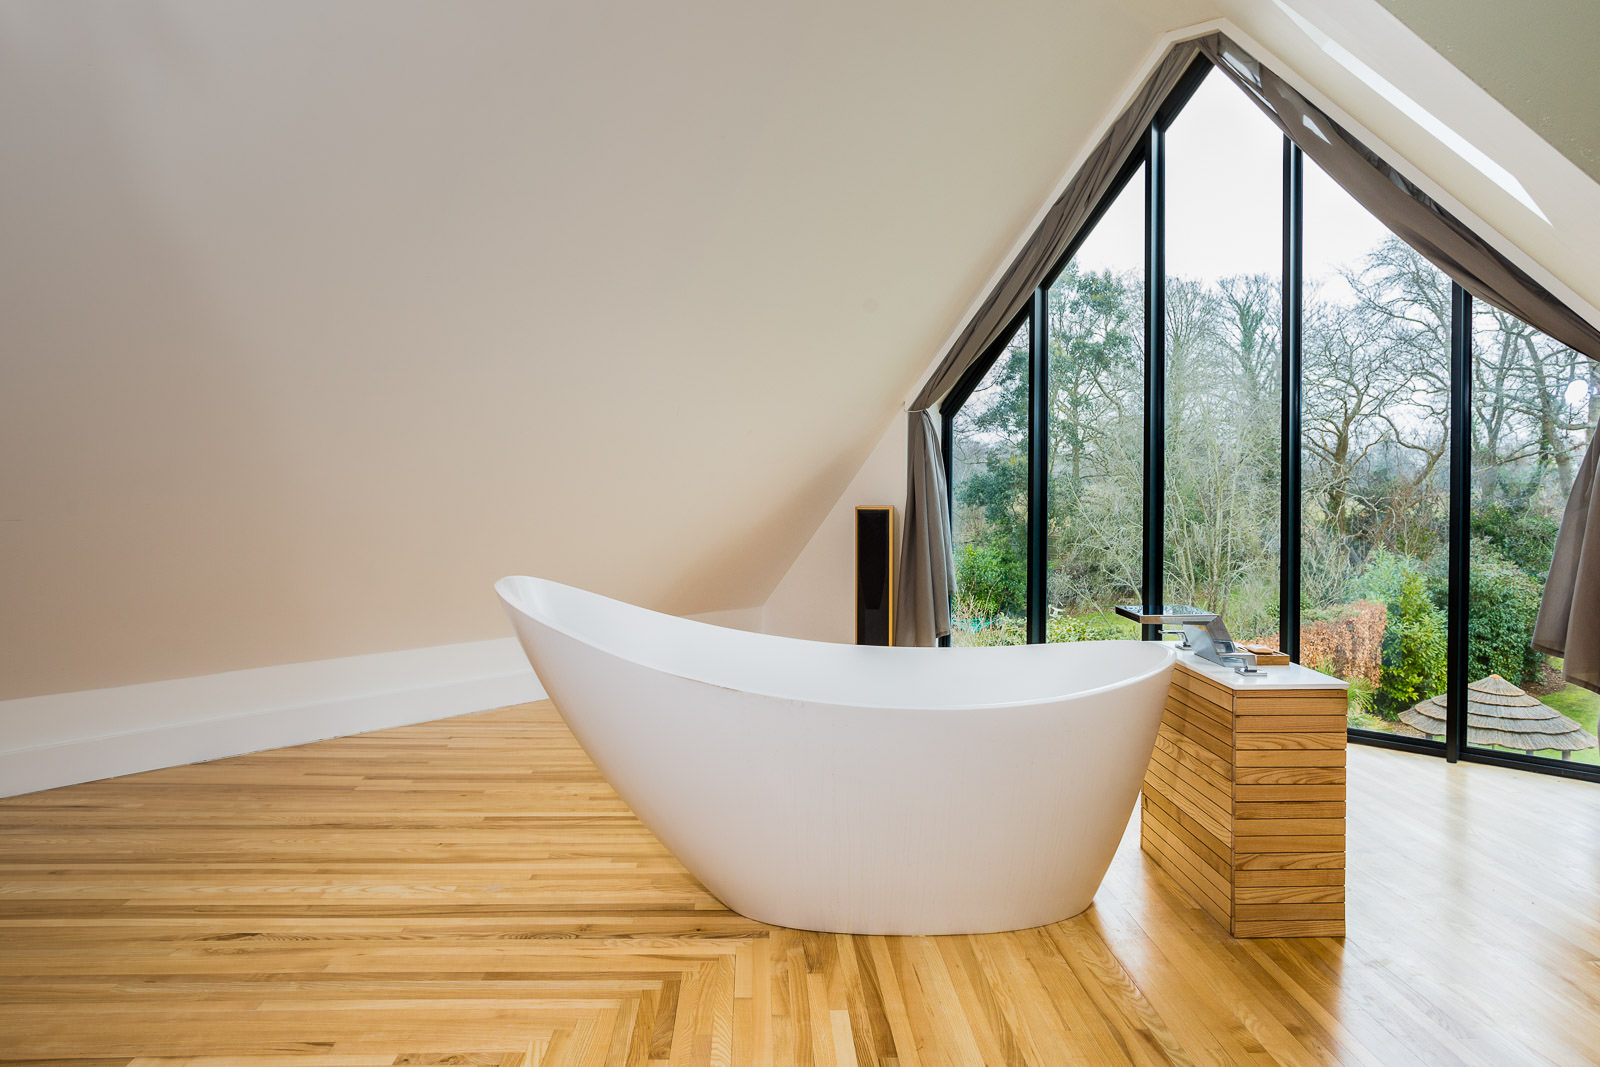 White hip bath with view through windows into a rear garden